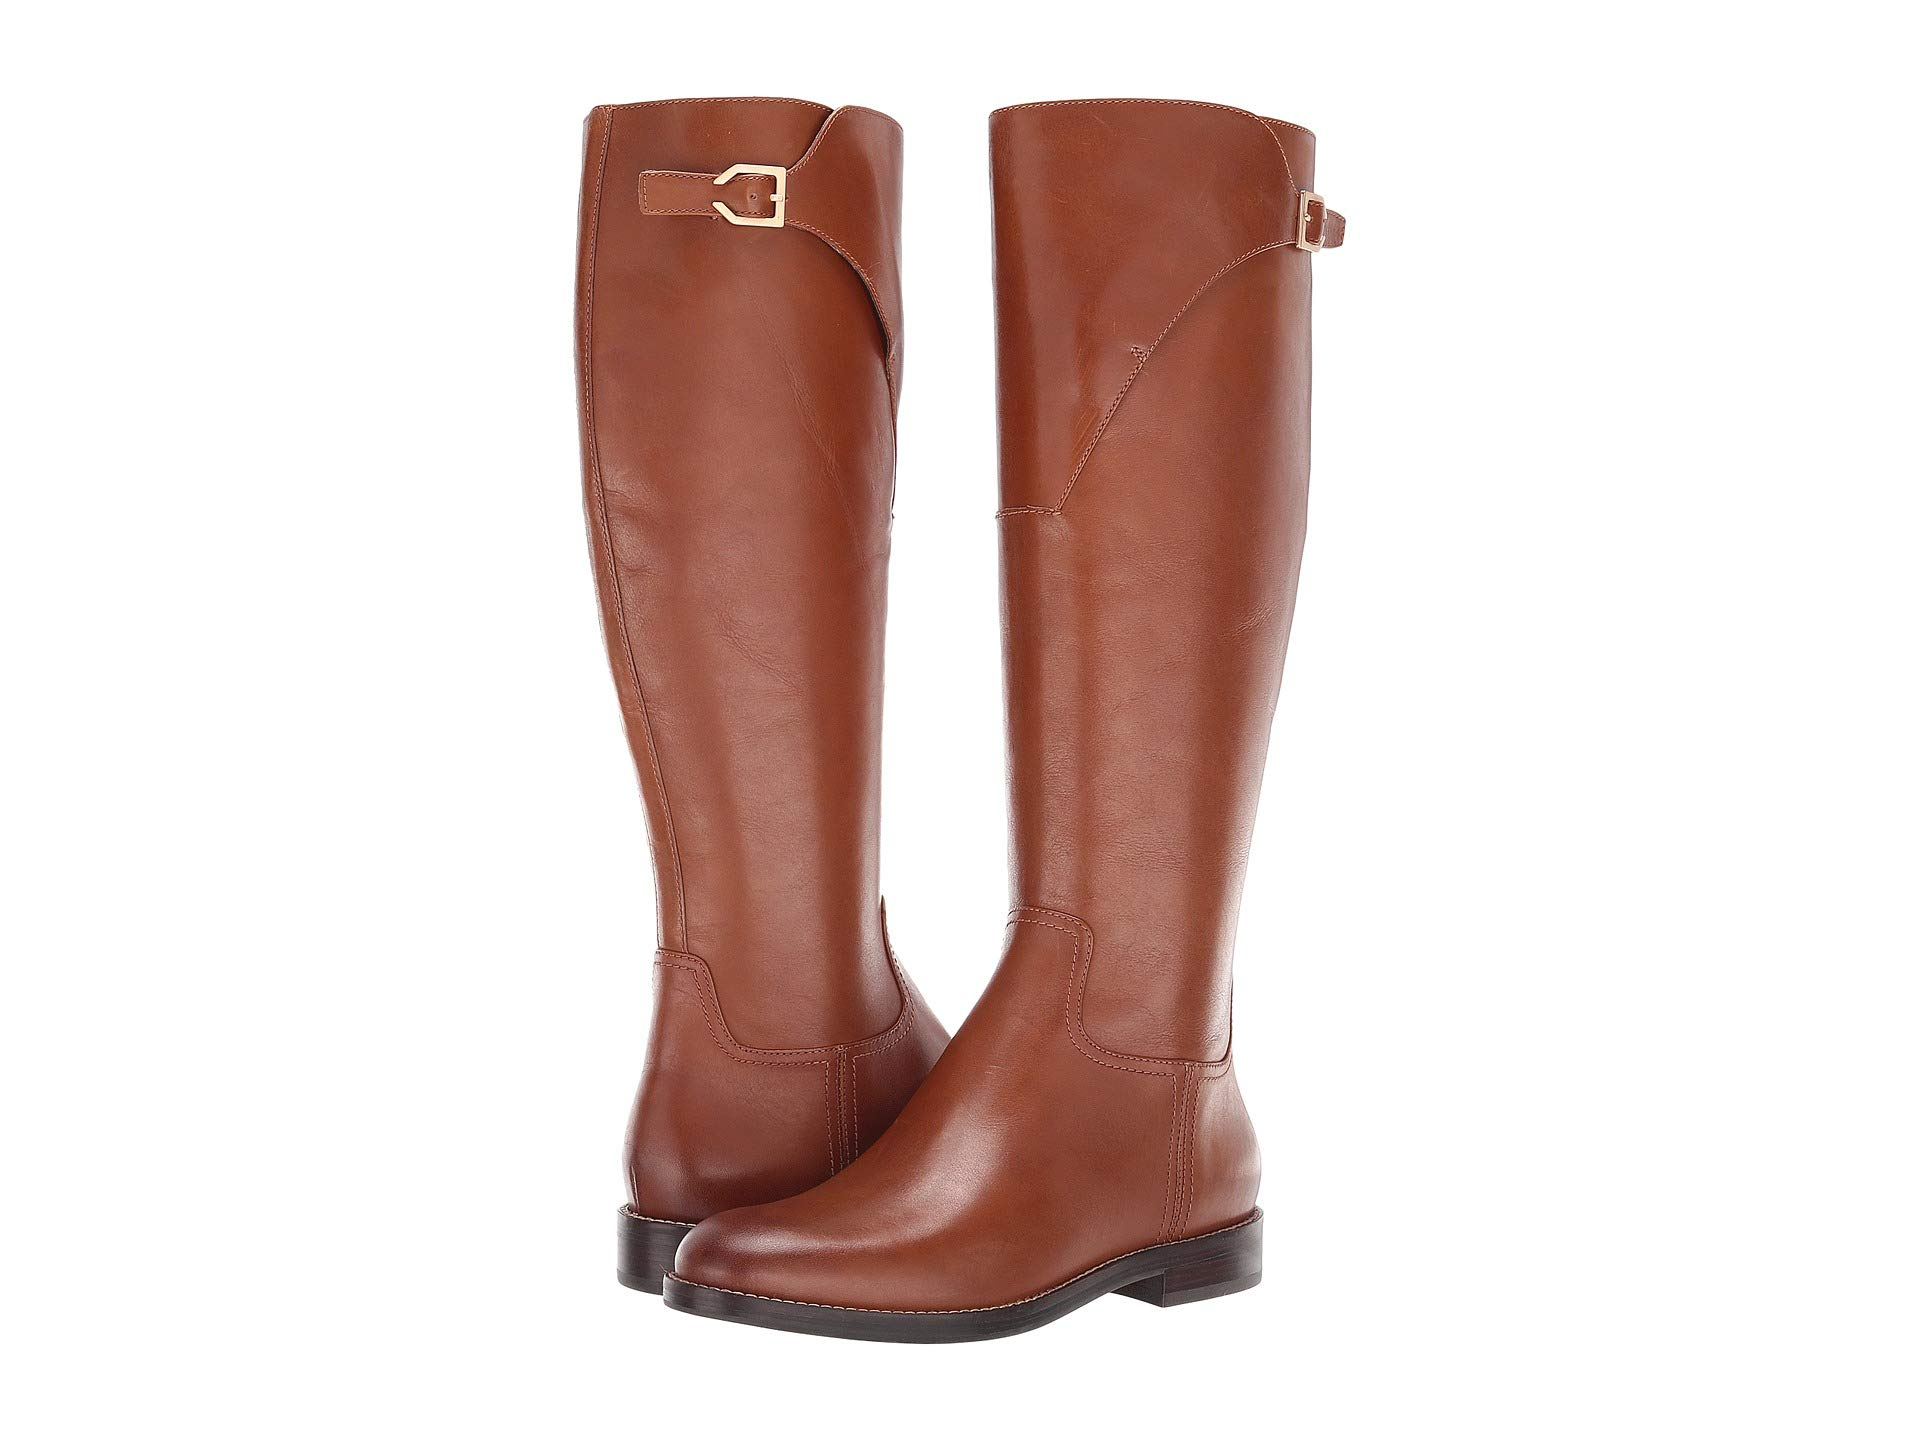 tan cole haan riding boots with a flat heel